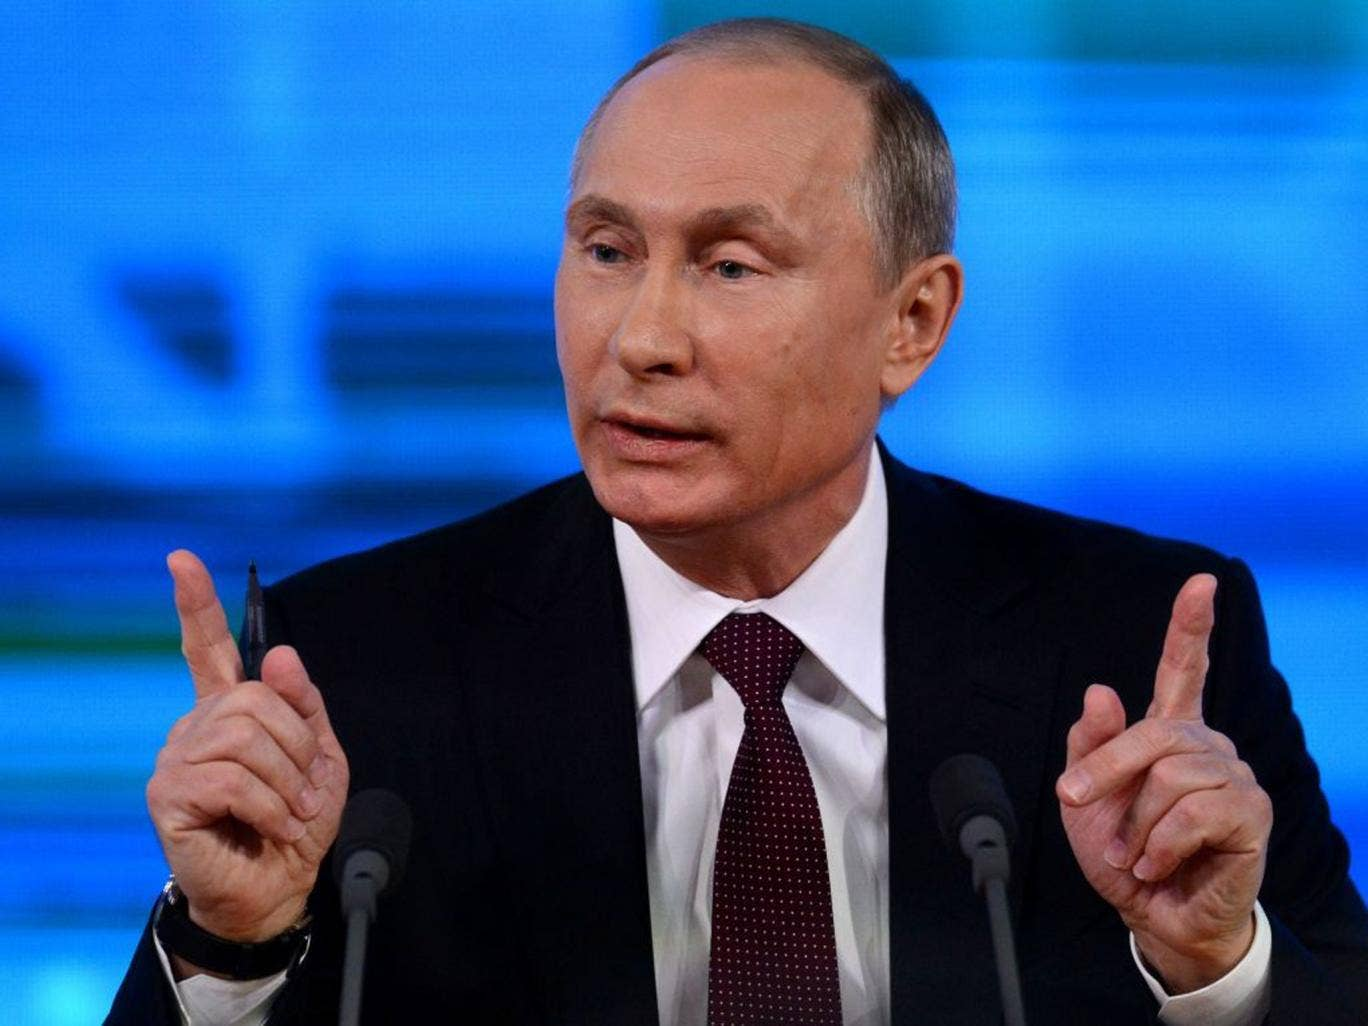 Russia's President Vladimir Putin speaks at his annual press conference in Moscow on 19 December 2013